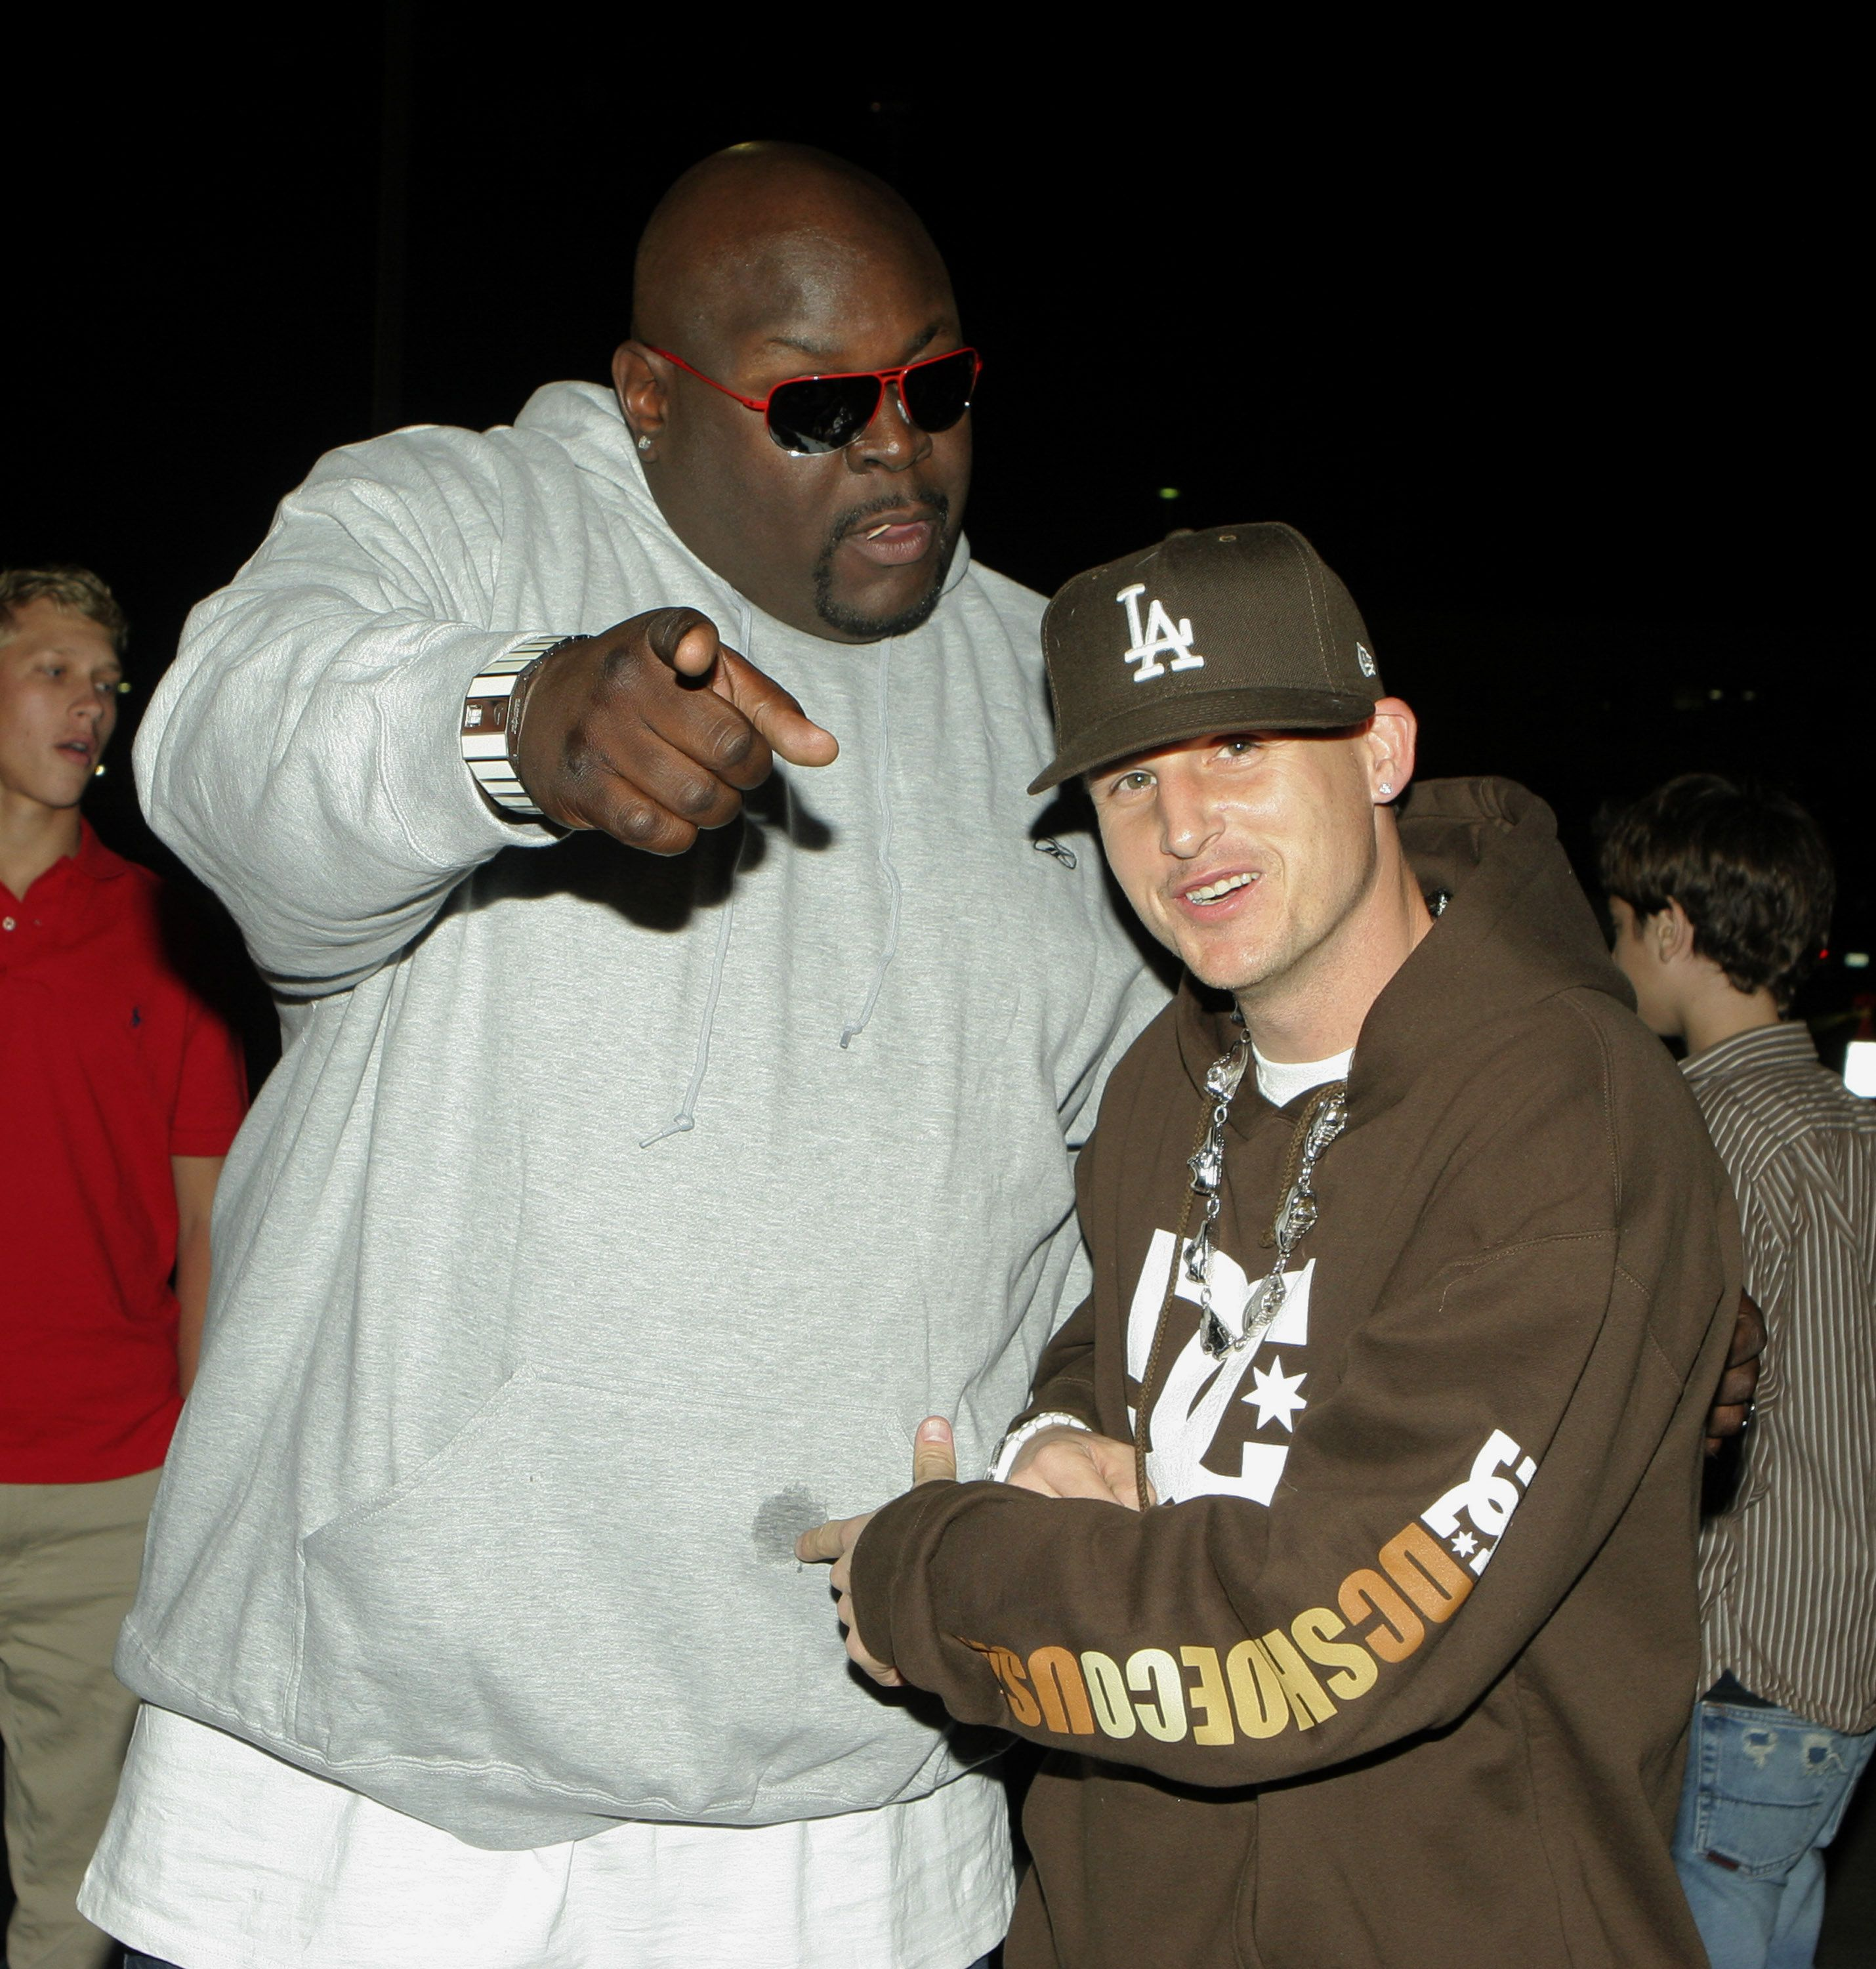 Big Black Christopher Boykin and Rob Dyrdek during Inaugural Arby's Action Sports Awards - Red Carpet and Show at Center Staging in Burbank, California, United States. (Photo by Rebecca Sapp/WireImage for Arby's Restaurant Group, Inc.)